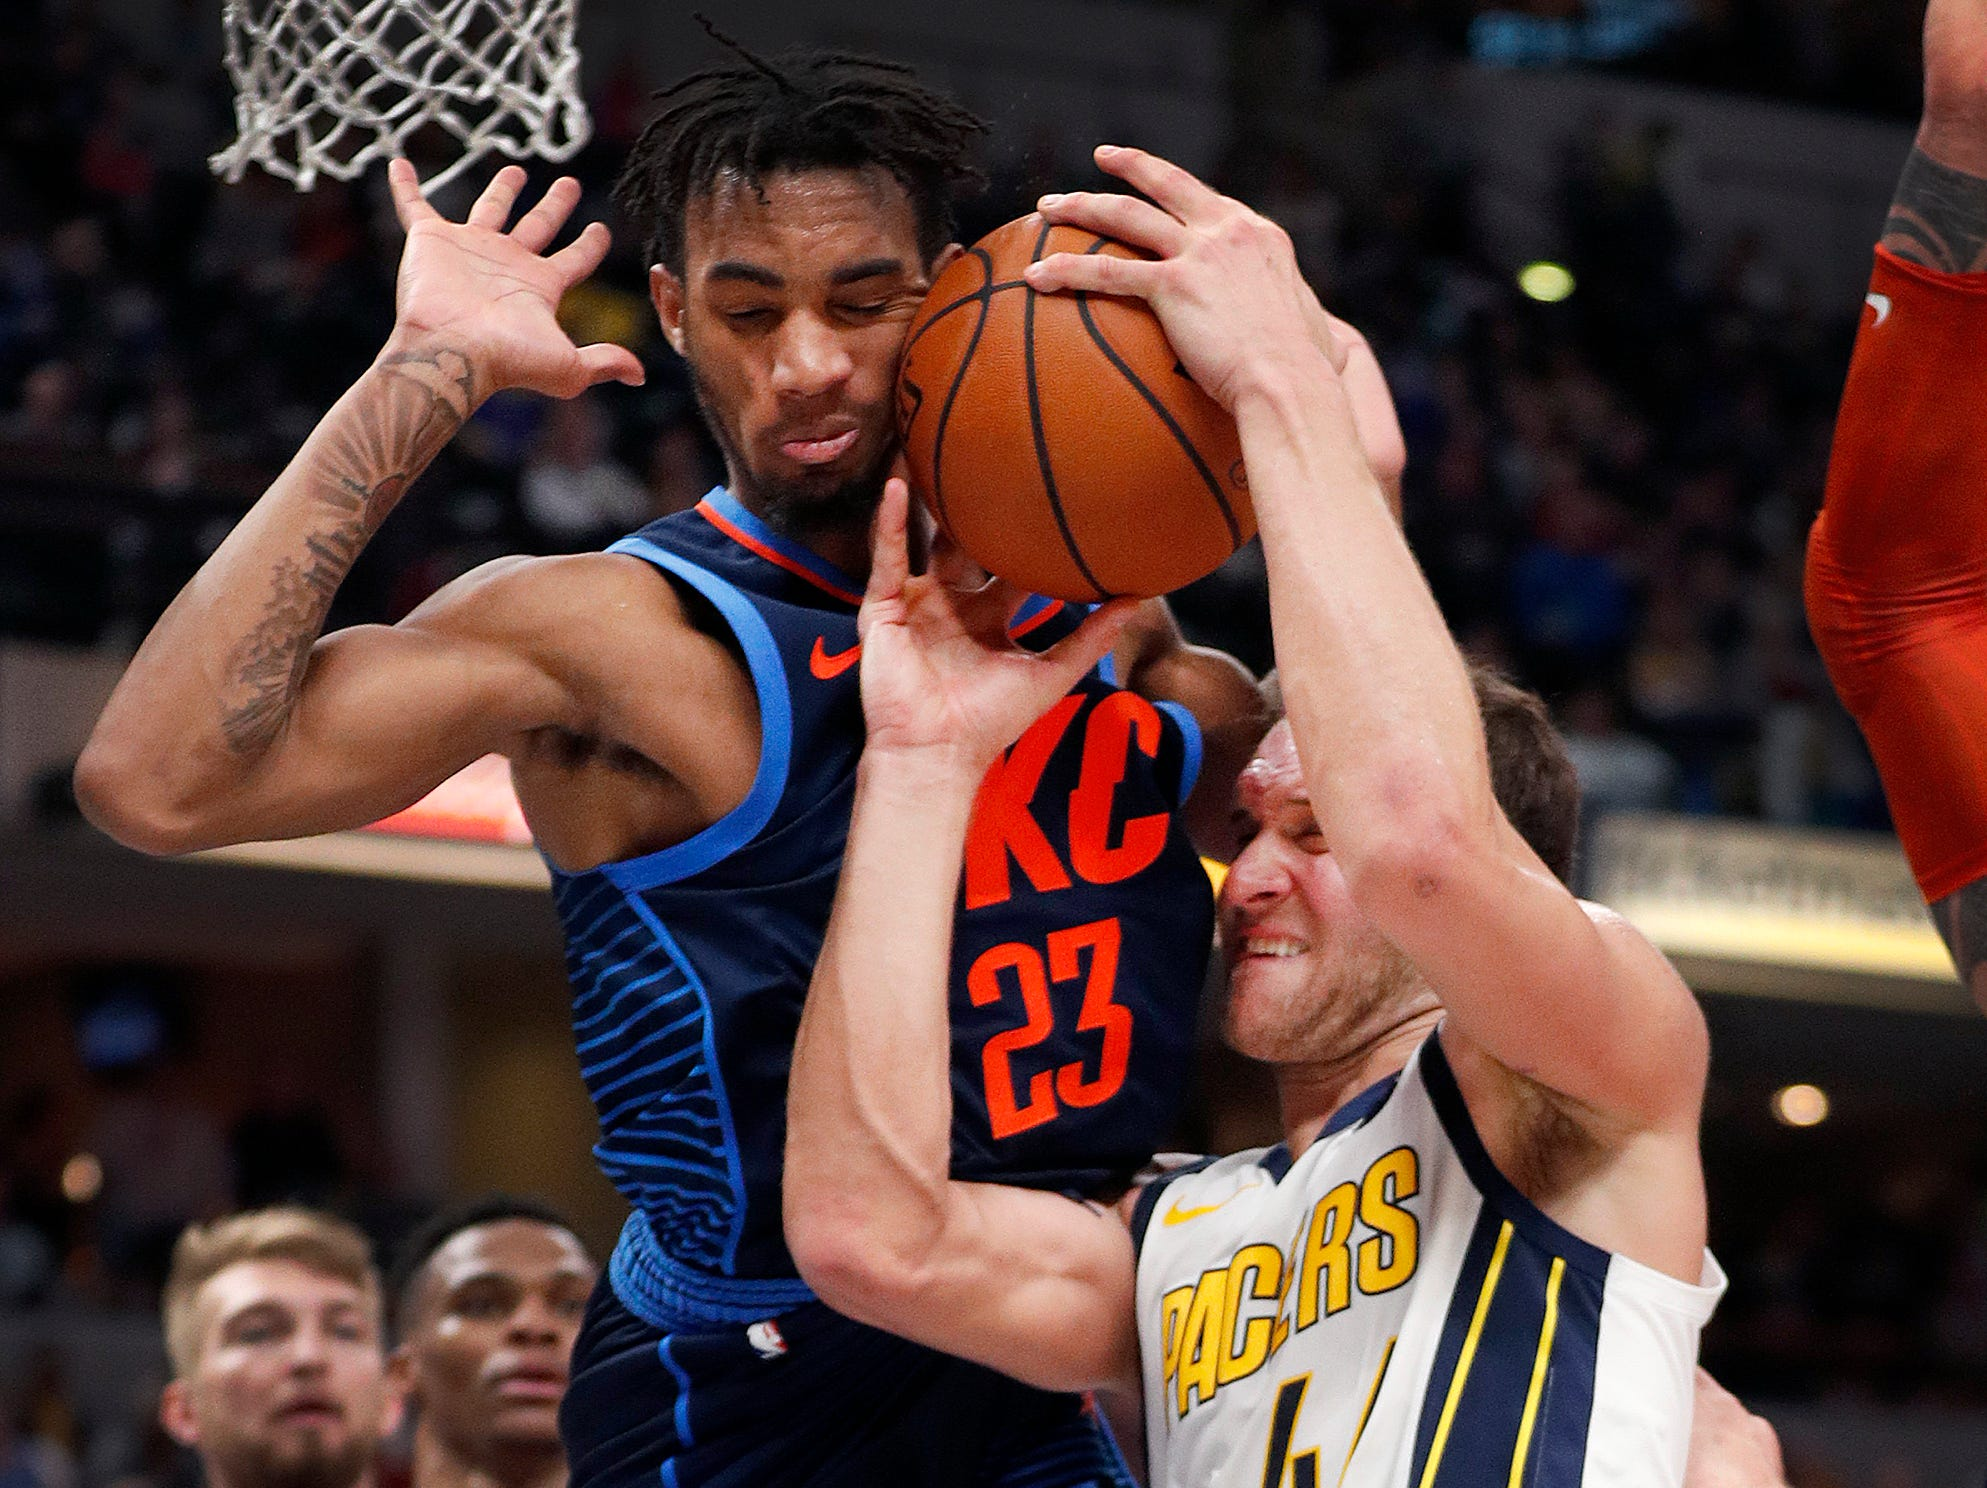 Indiana Pacers forward Bojan Bogdanovic (44) is fouled by Oklahoma City Thunder guard Terrance Ferguson (23) in the second half of their game at Bankers Life Fieldhouse on Thursday, Mar. 14, 2019. The Pacers defeated the Thunder 108-106.